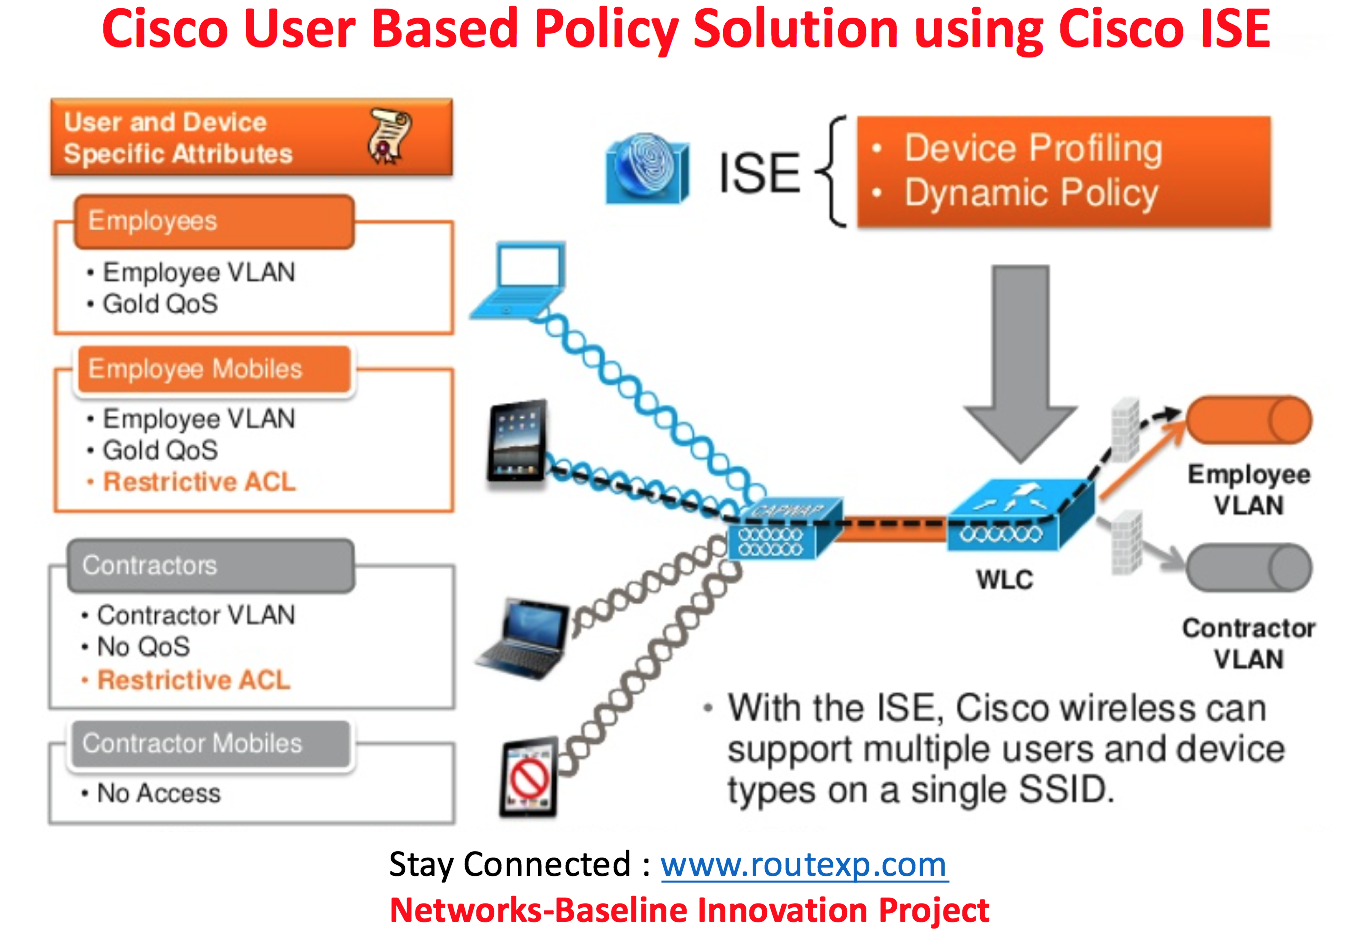 Fig 1.1- Policy Based solution using Cisco ISE